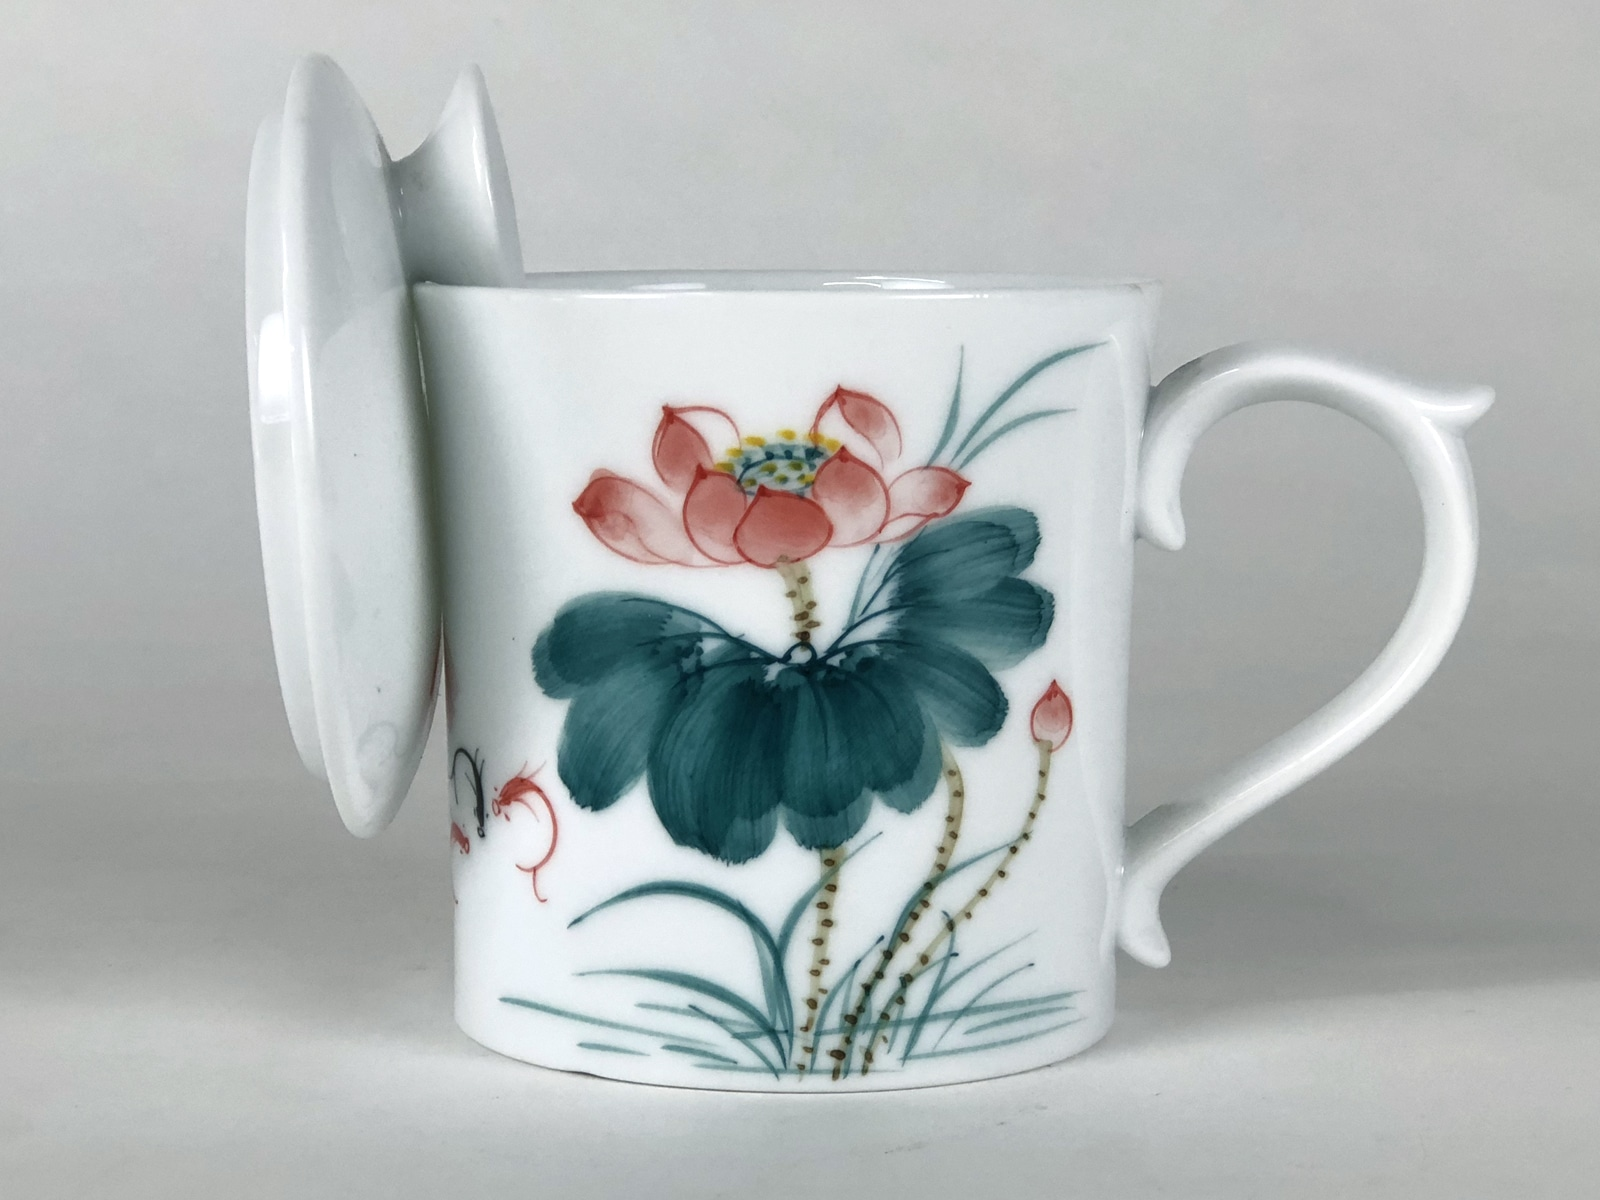 Tea mug with lotus painting and strainer built into its wall